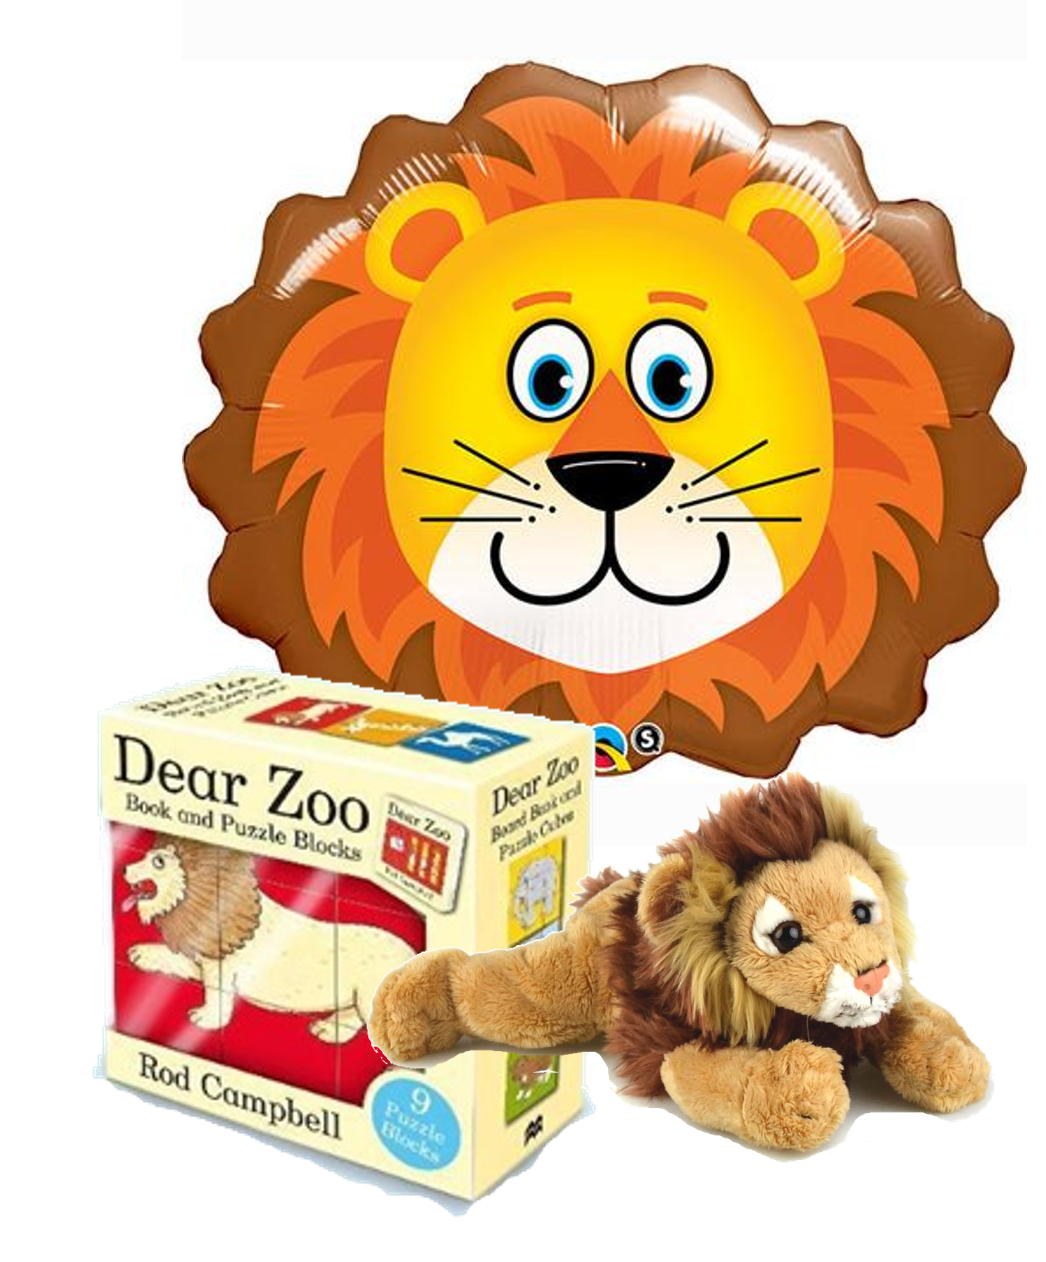 Lion gift combo teddy. Zoo clipart dear zoo picture download